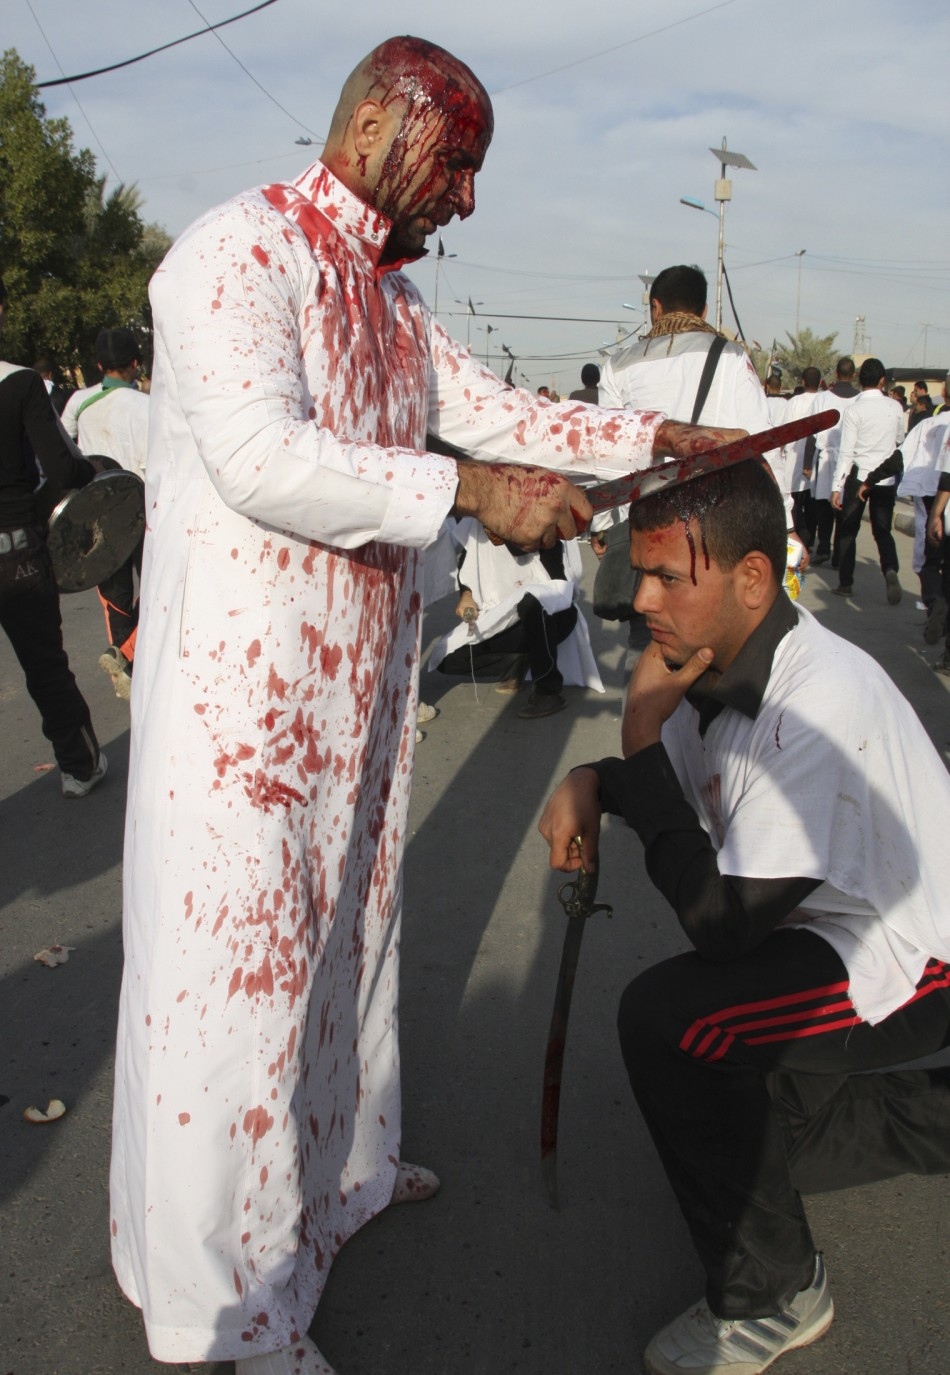 Shiite Iraqi men covered in blood take part in the Ashura procession in Baghdads Sadr City